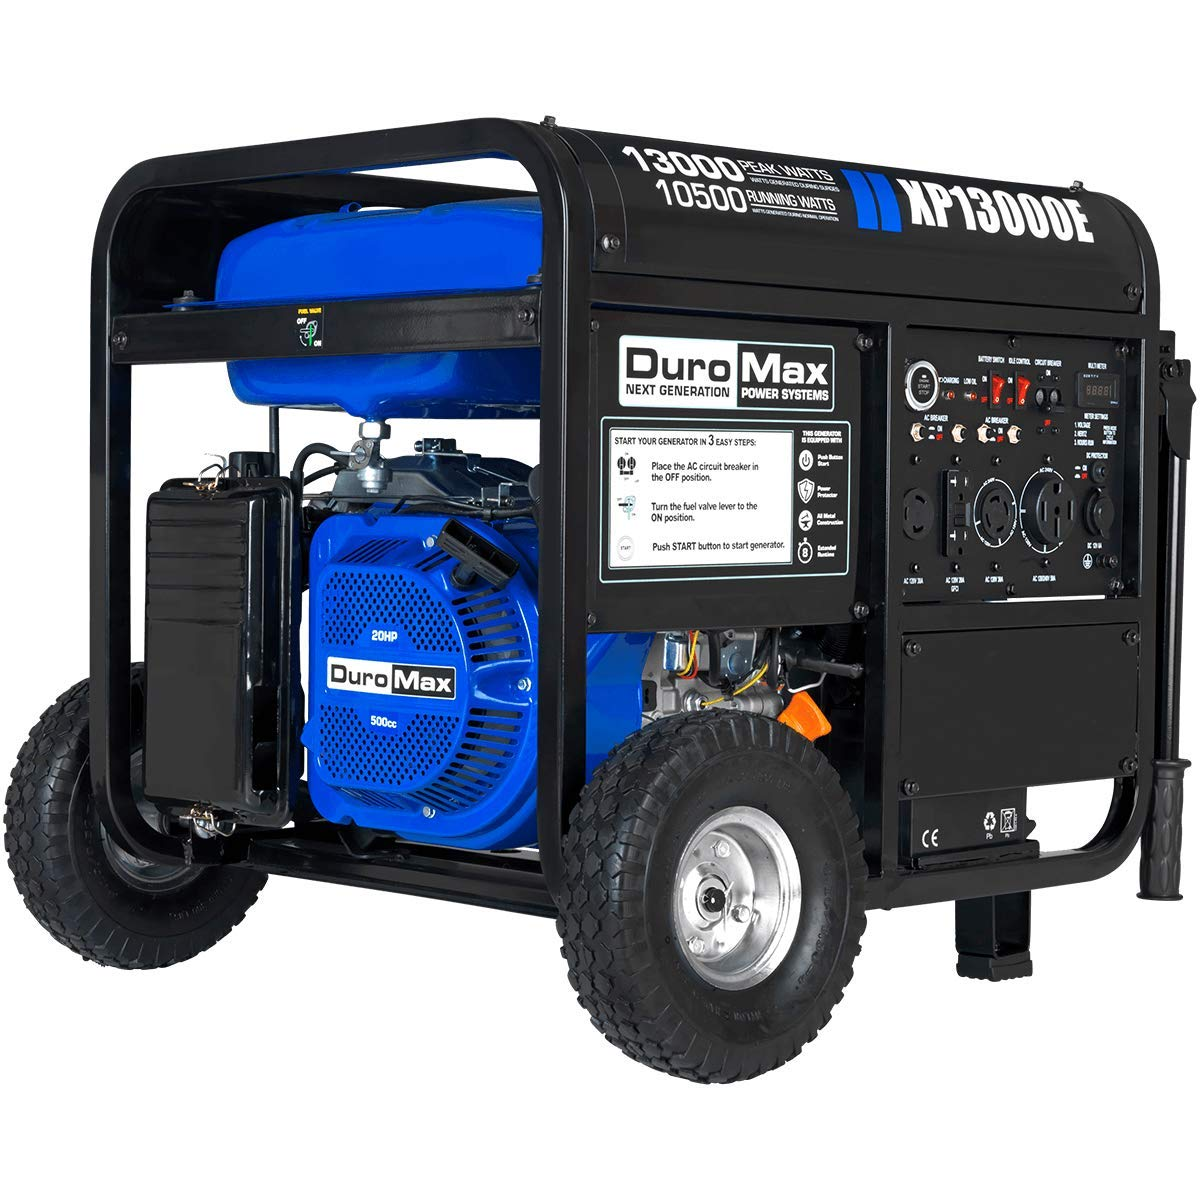 DuroMax XP13000E Gas Powered Portable Generator